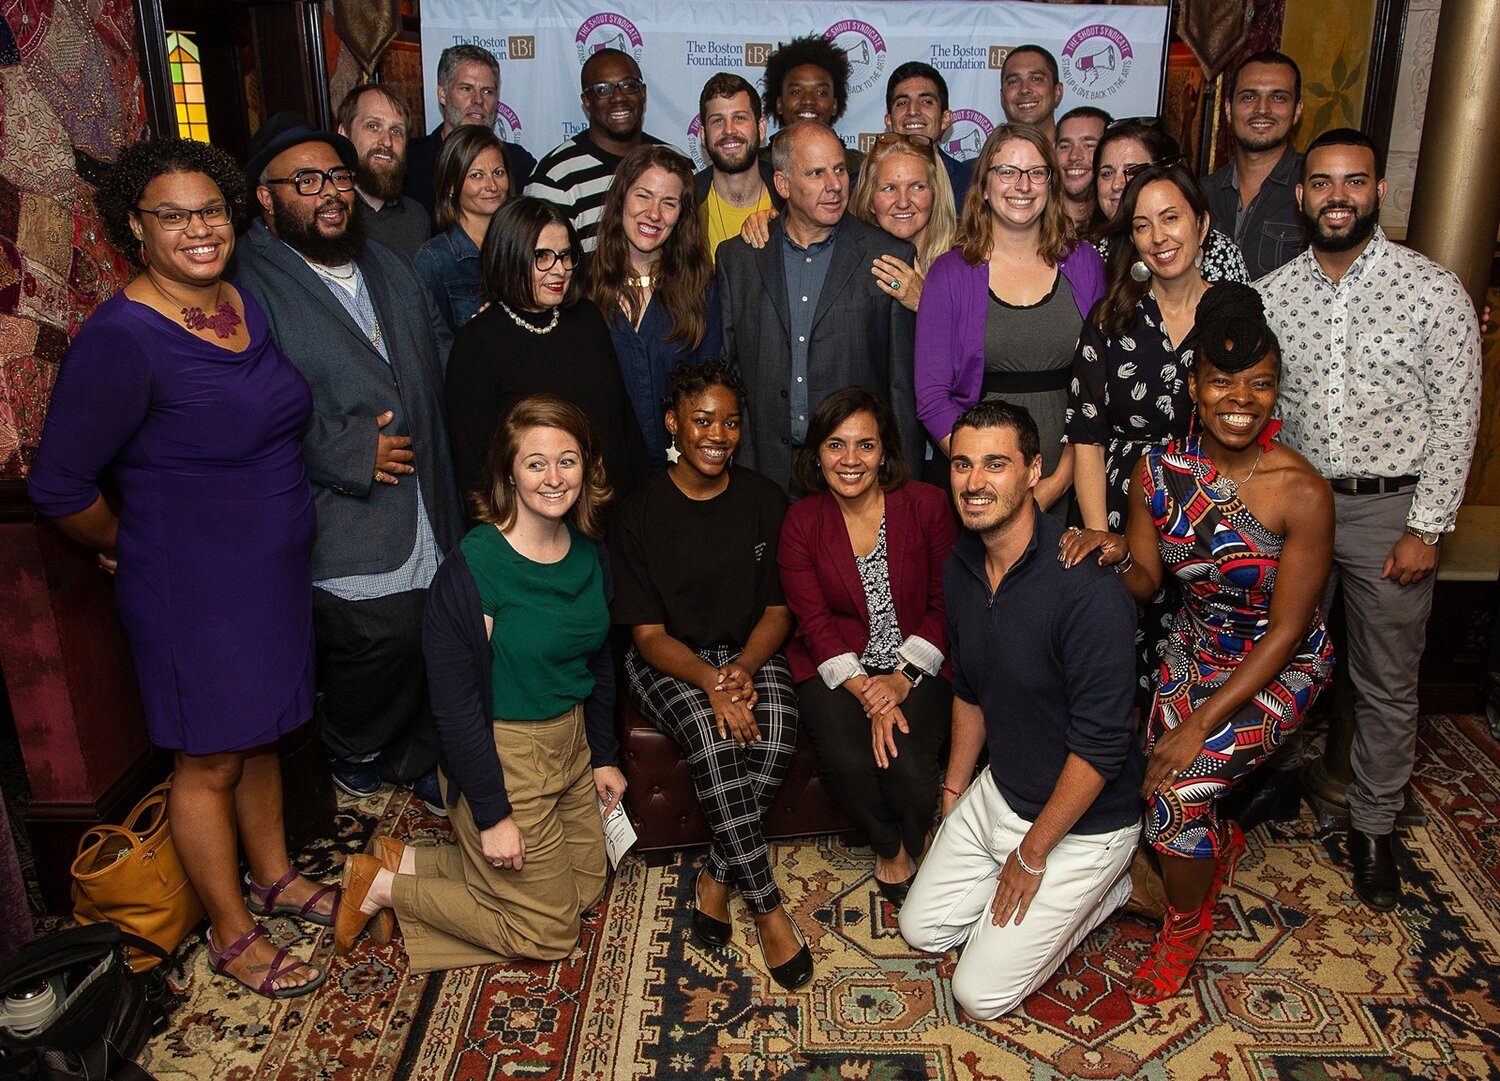 Group photo of recipients at event at the House of Blues - Photo Credit: Suzanne Oulette